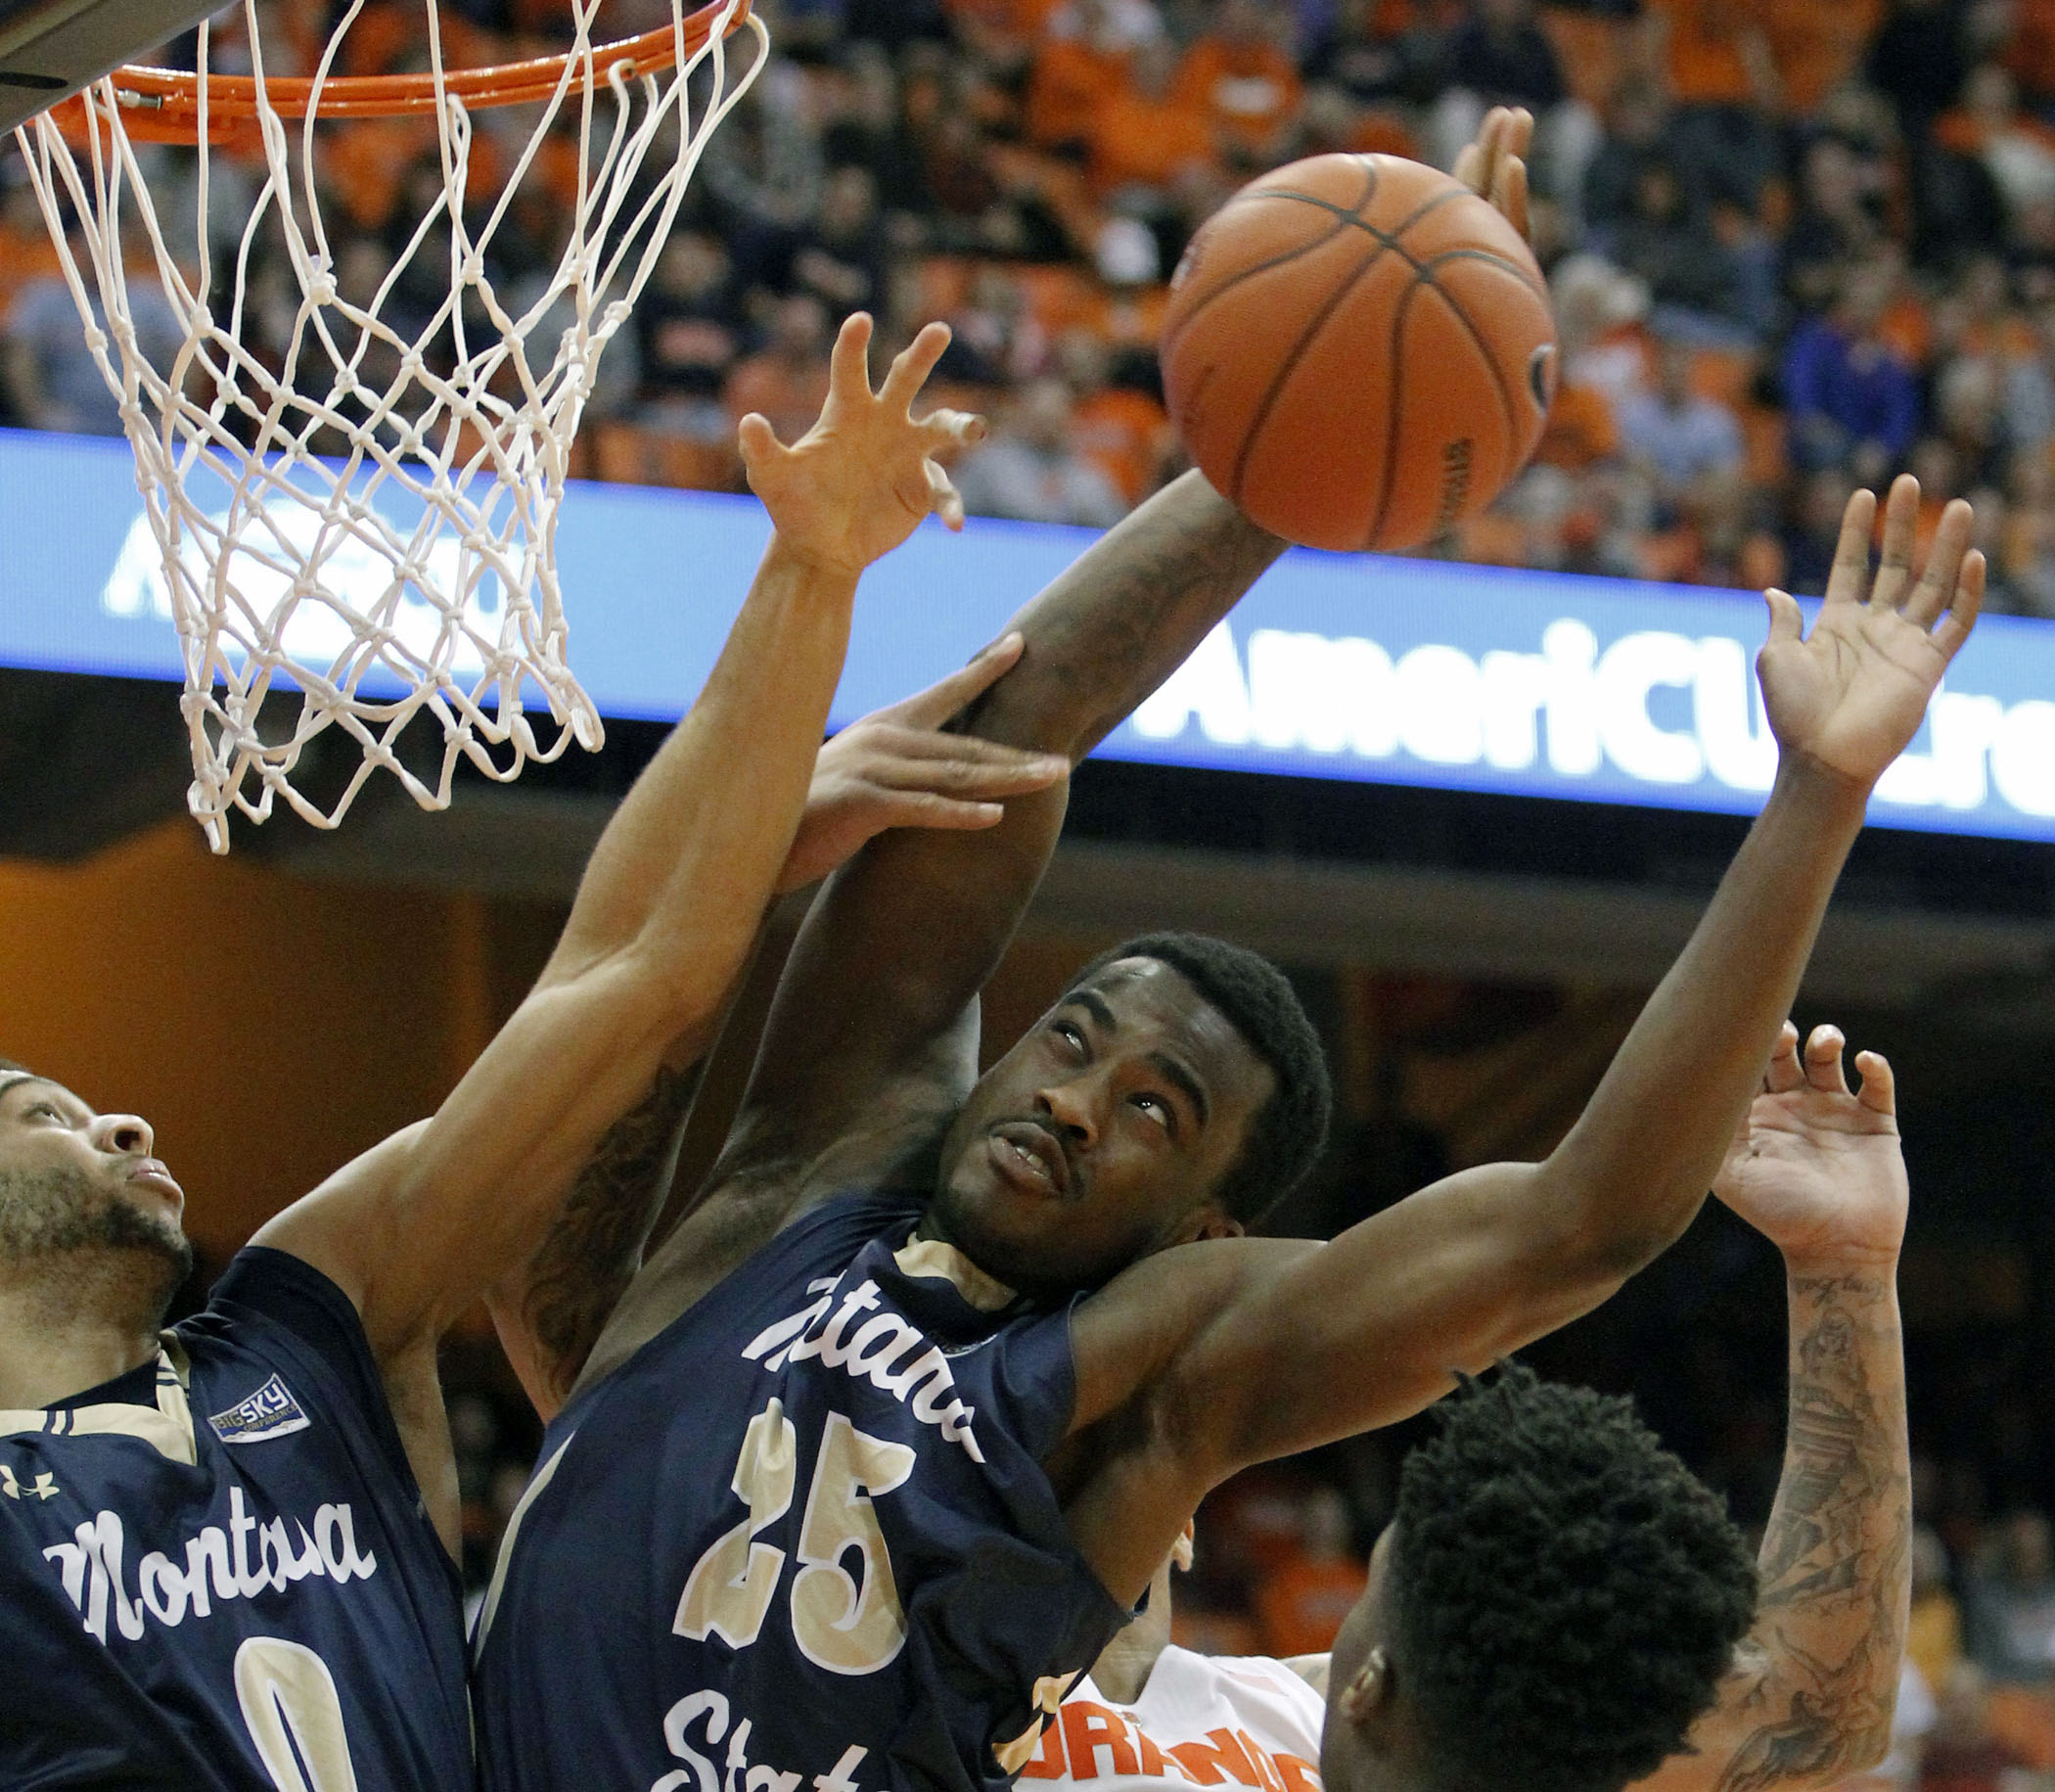 Montana State's Shy Blake, right, grabs a rebound dominating the boards with teammate Zach Green, left, in the first half of an NCAA college basketball game in Syracuse, N.Y., Tuesday, Dec. 22, 2015. (AP Photo/Nick Lisi)